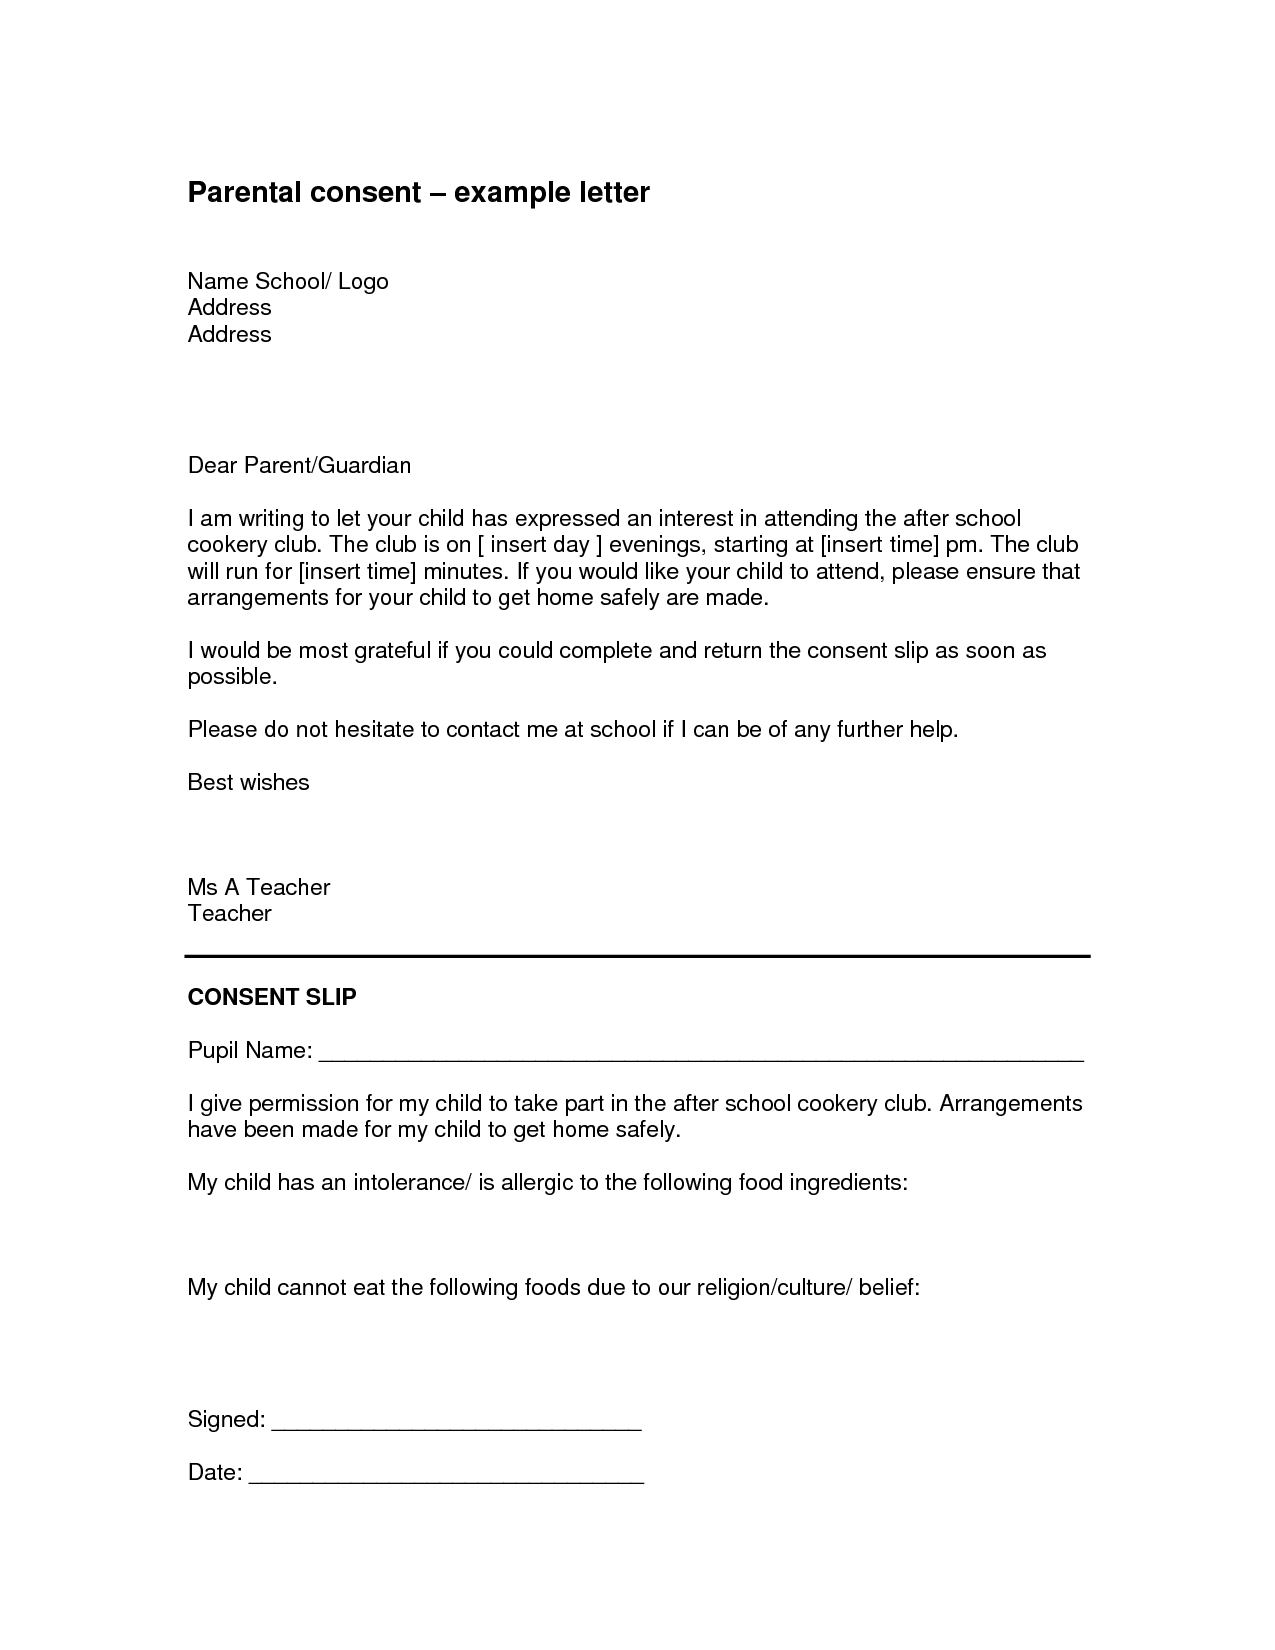 Travel Consent Letter Template - Parental Authorization Letter for Example Children Travelling